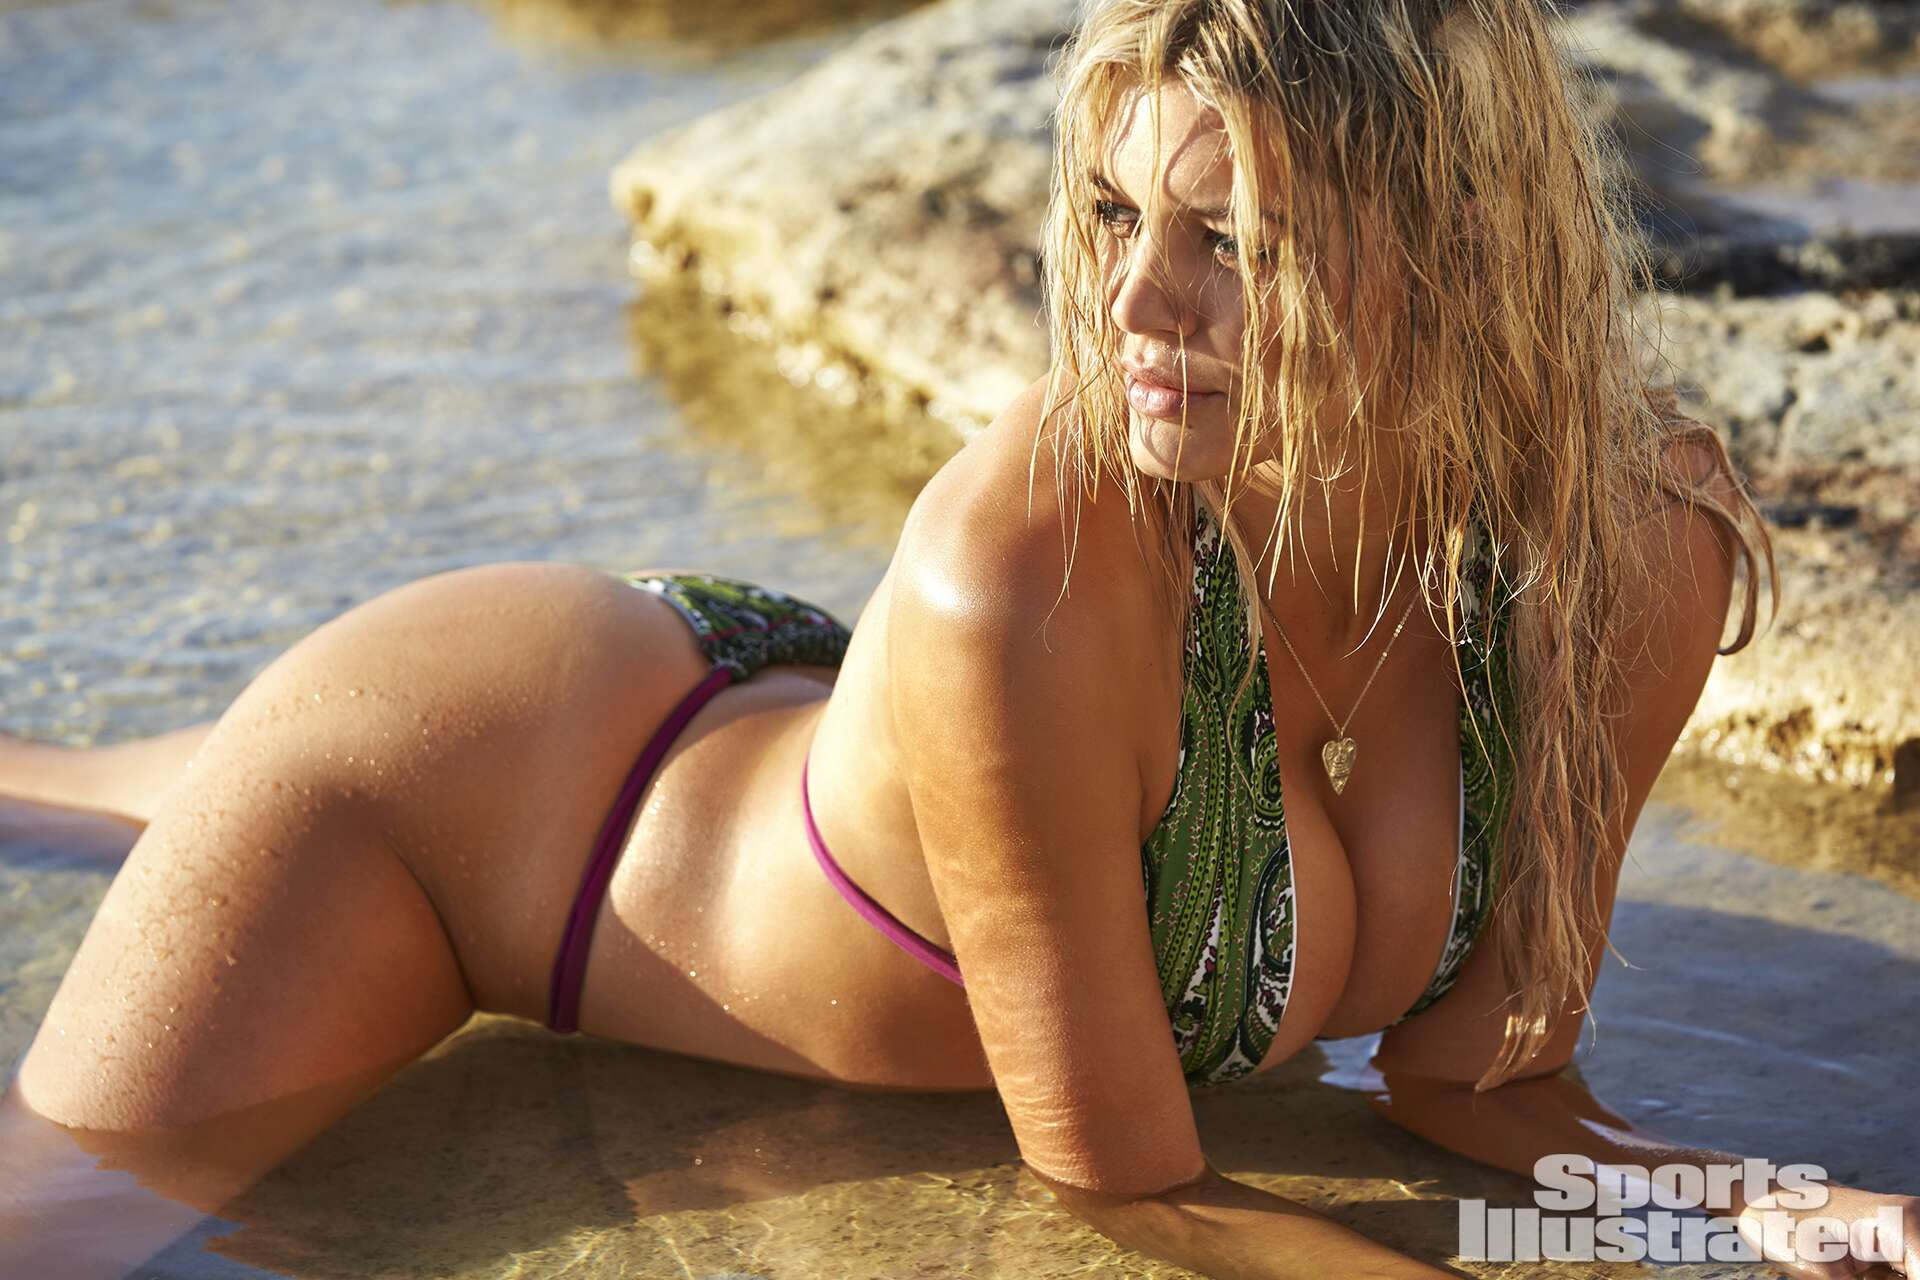 <p>Kelly Rohrbach was photographed by Ben Watts in Malta. Swimsuit by Ola Vida.</p>